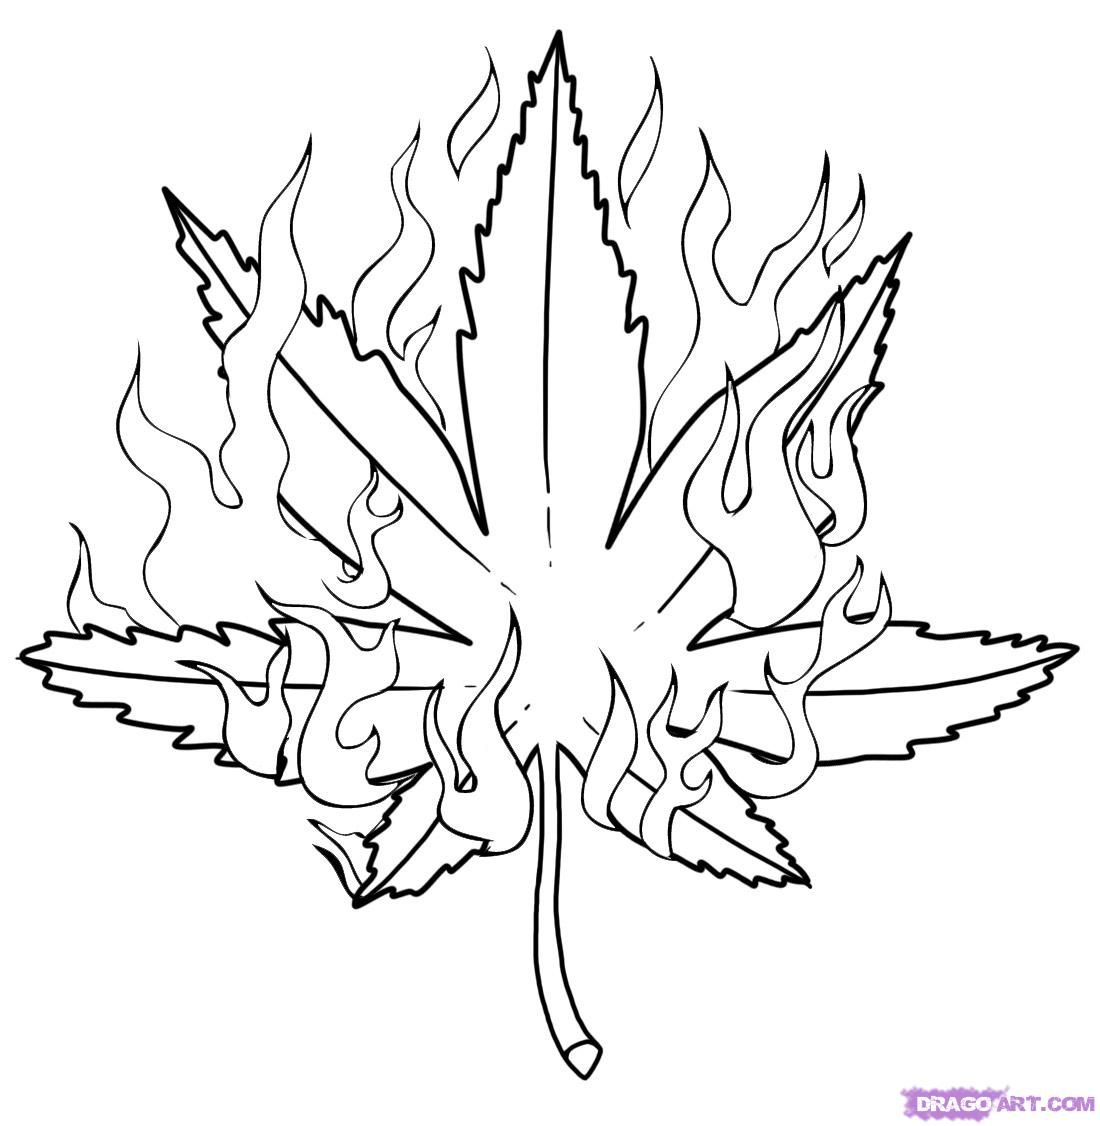 Leaves to Color and Print | Coloring Pages for children is a ...